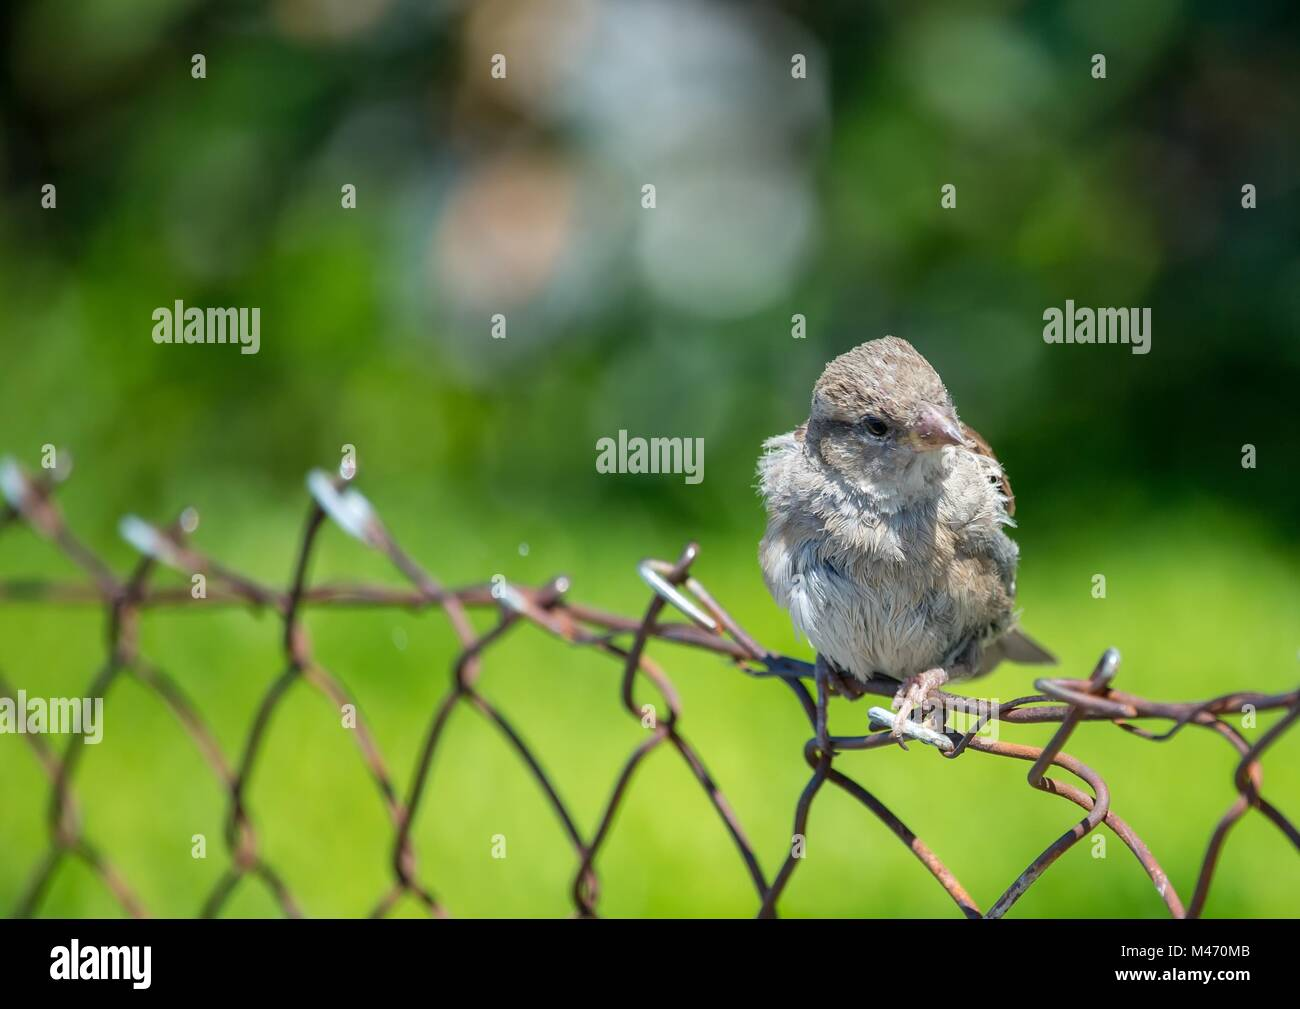 European oscine bird sitting on a fence in Germany - Stock Image